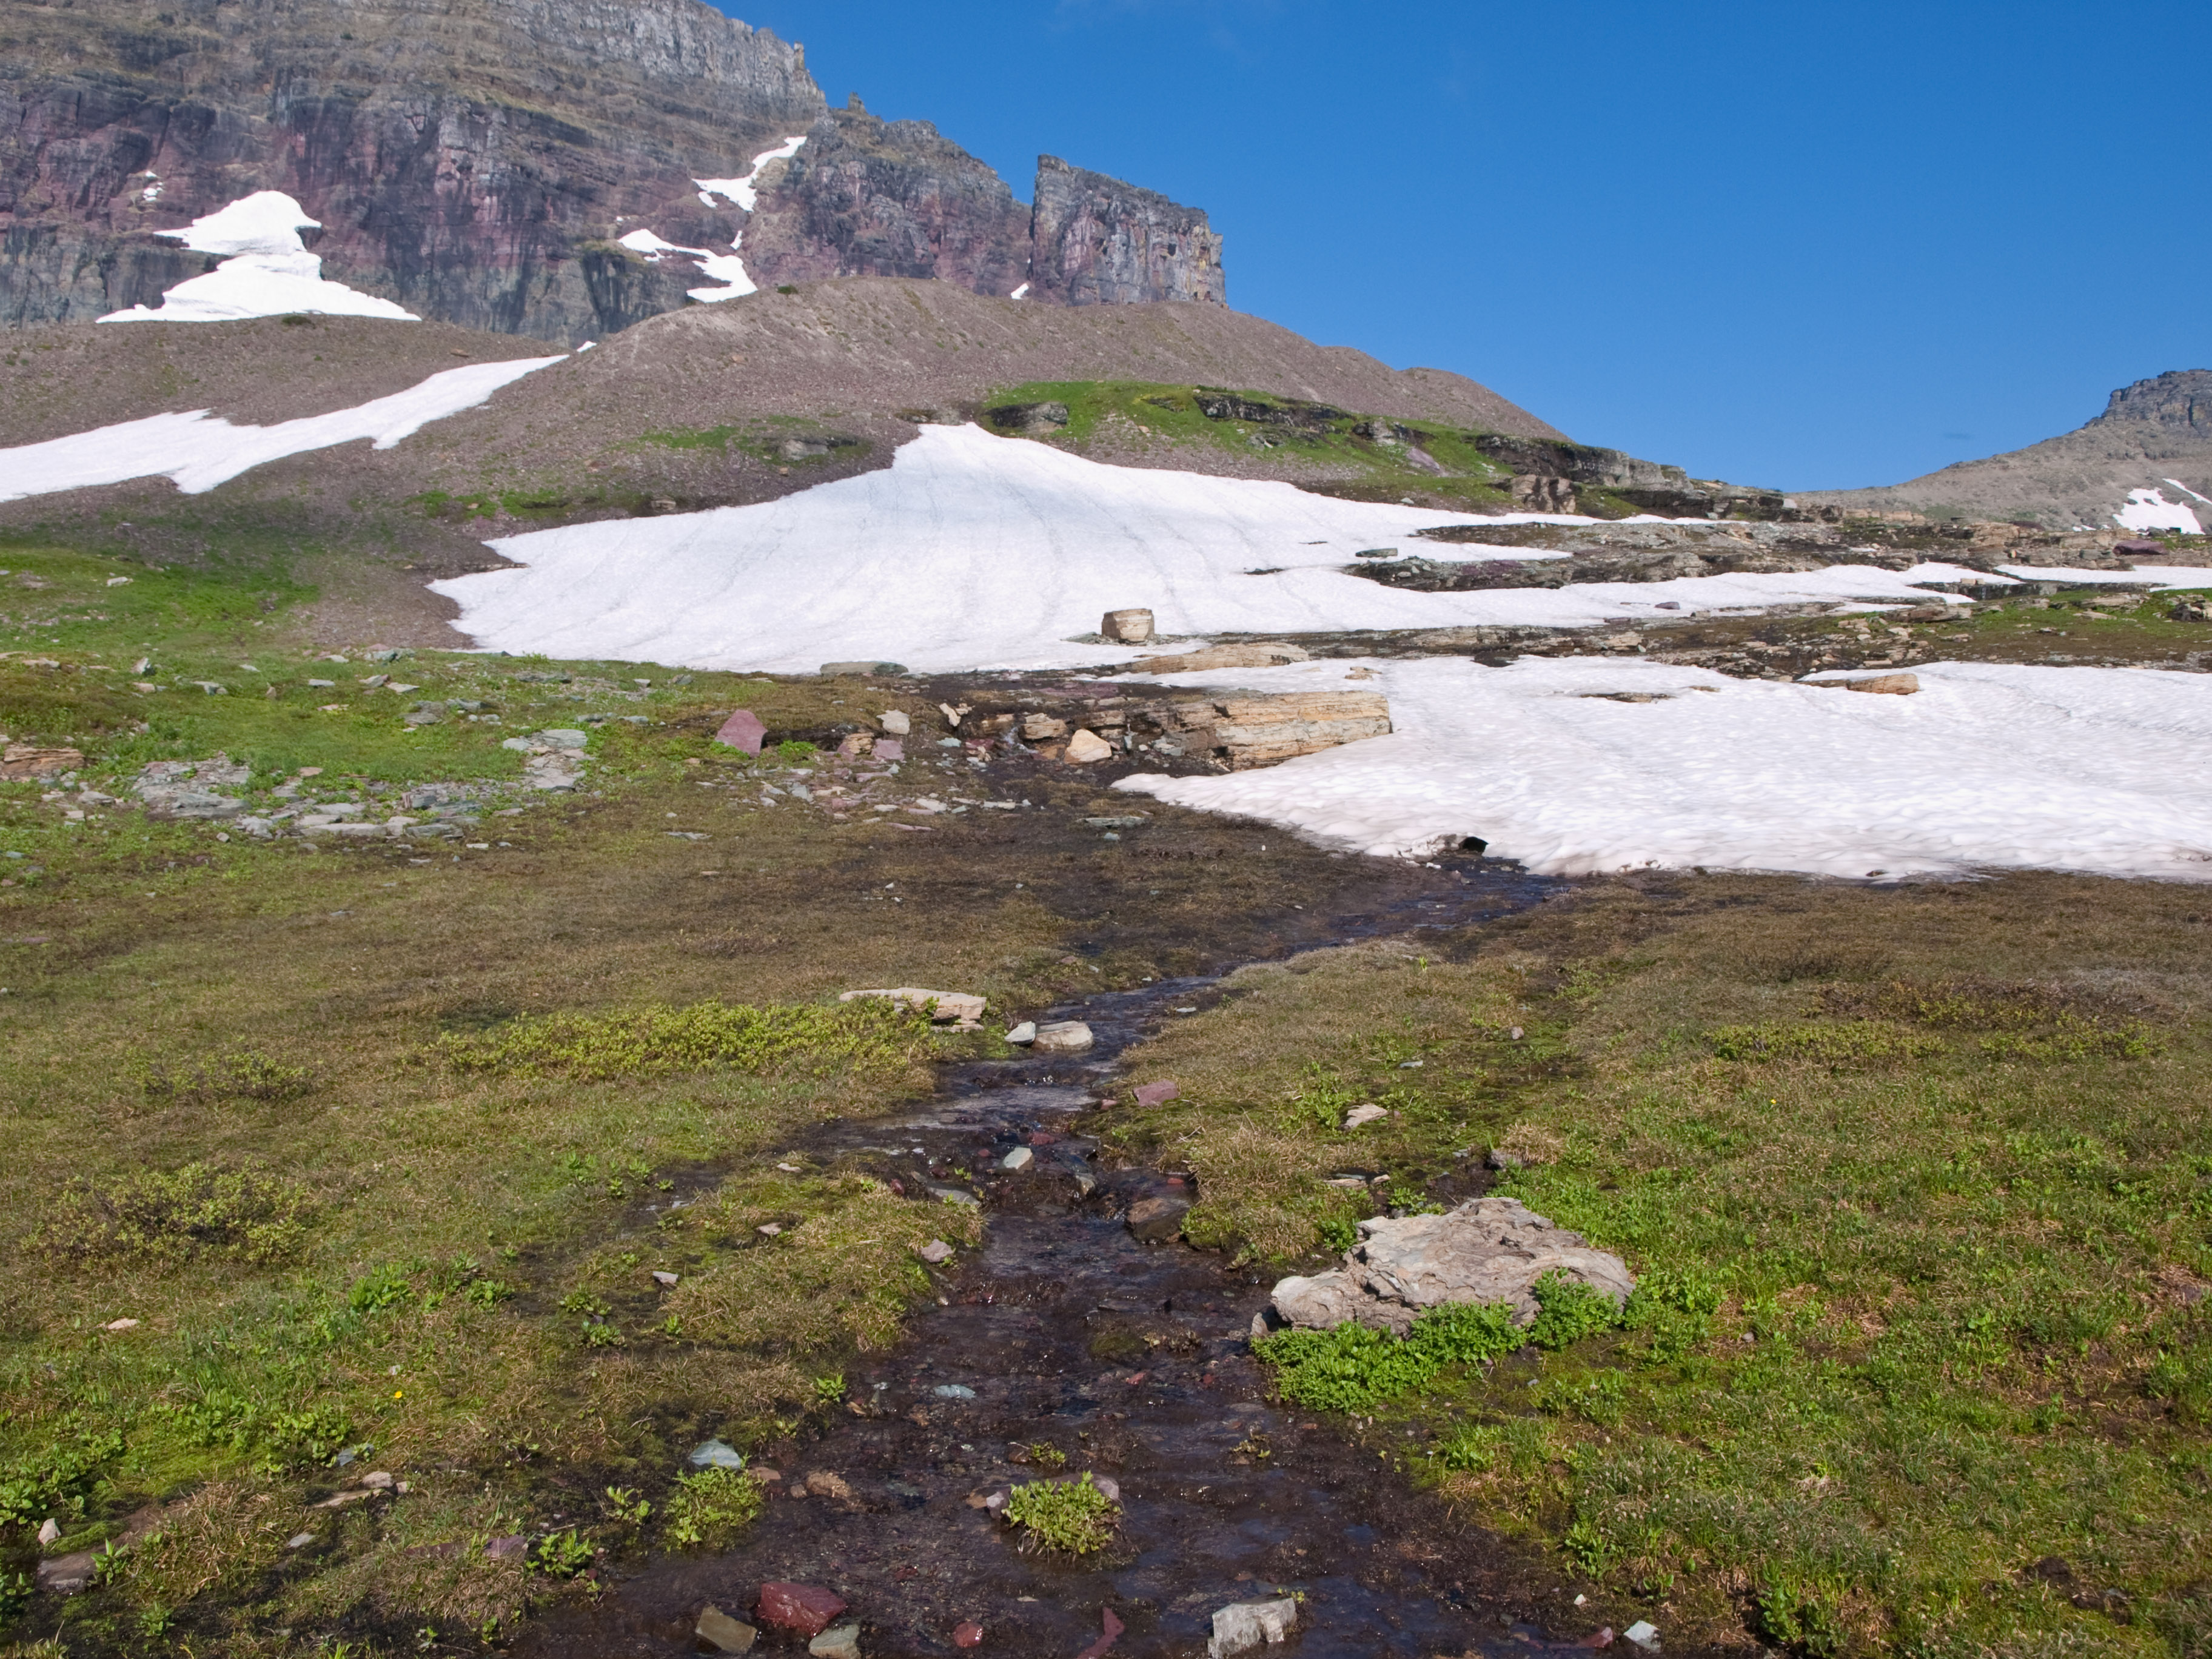 A trickle of water from melting snow drains down a mountain.